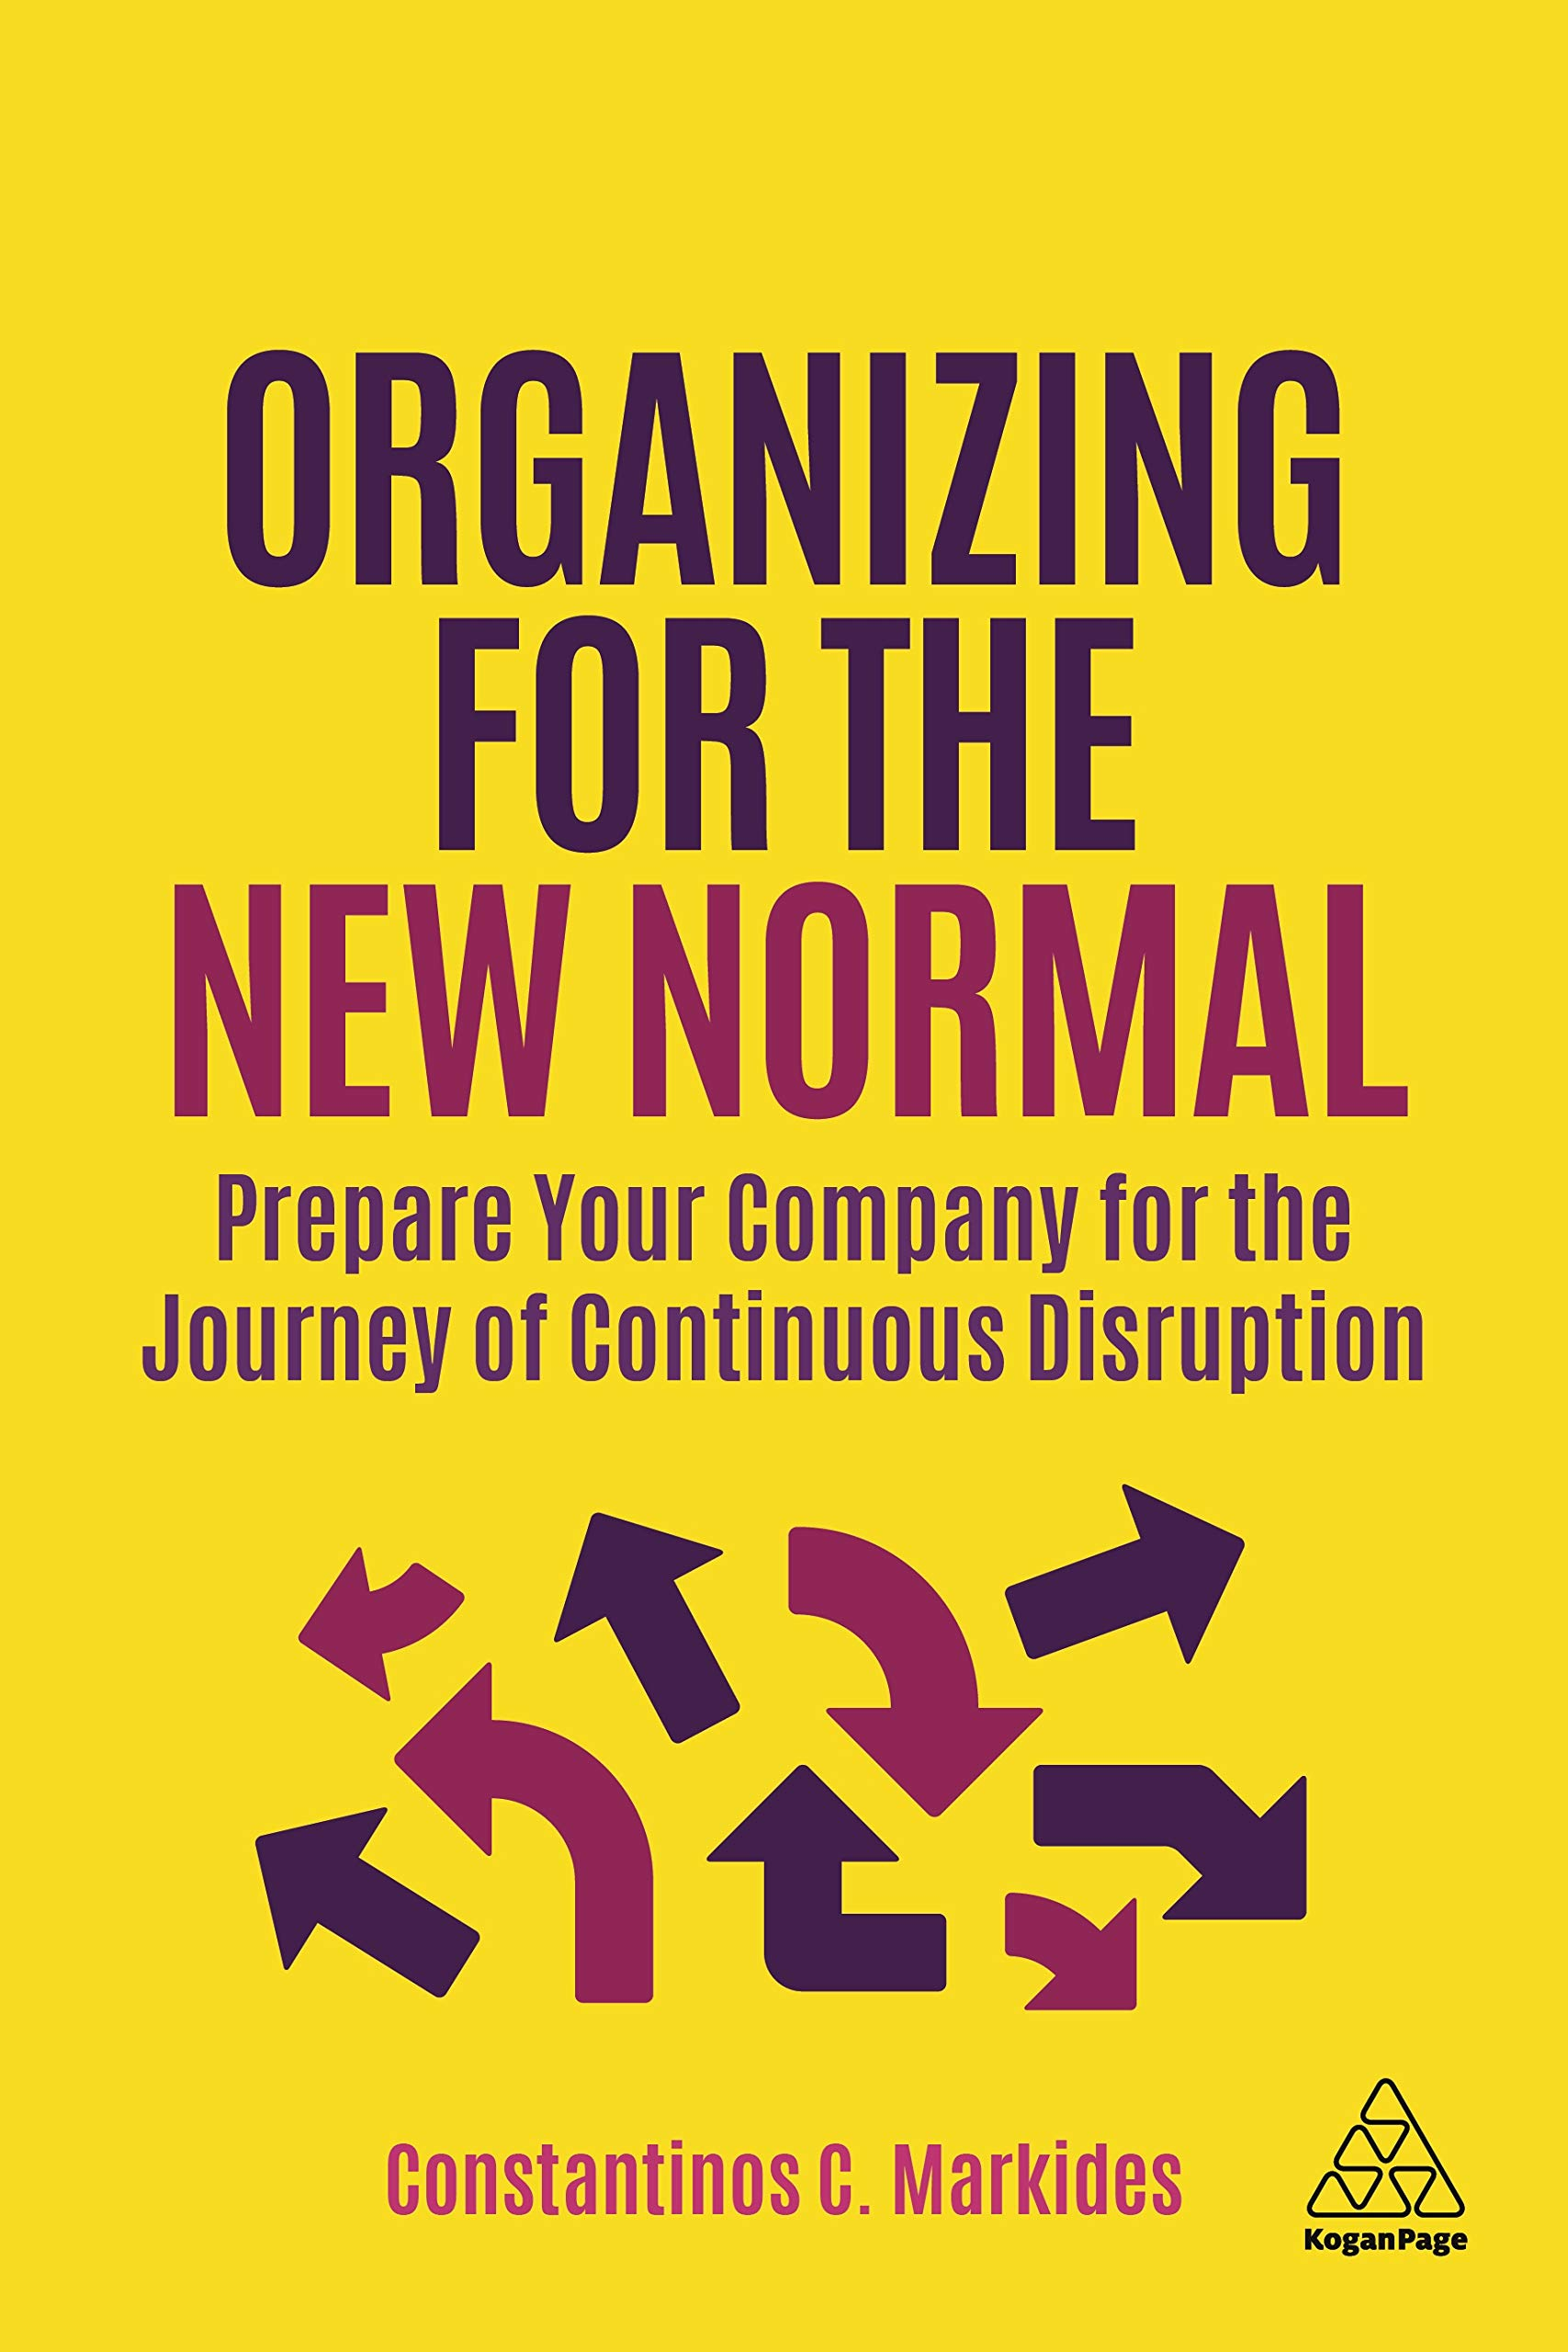 Organizing for the New Normal : Prepare Your Company for the Journey of Continuous Disruption